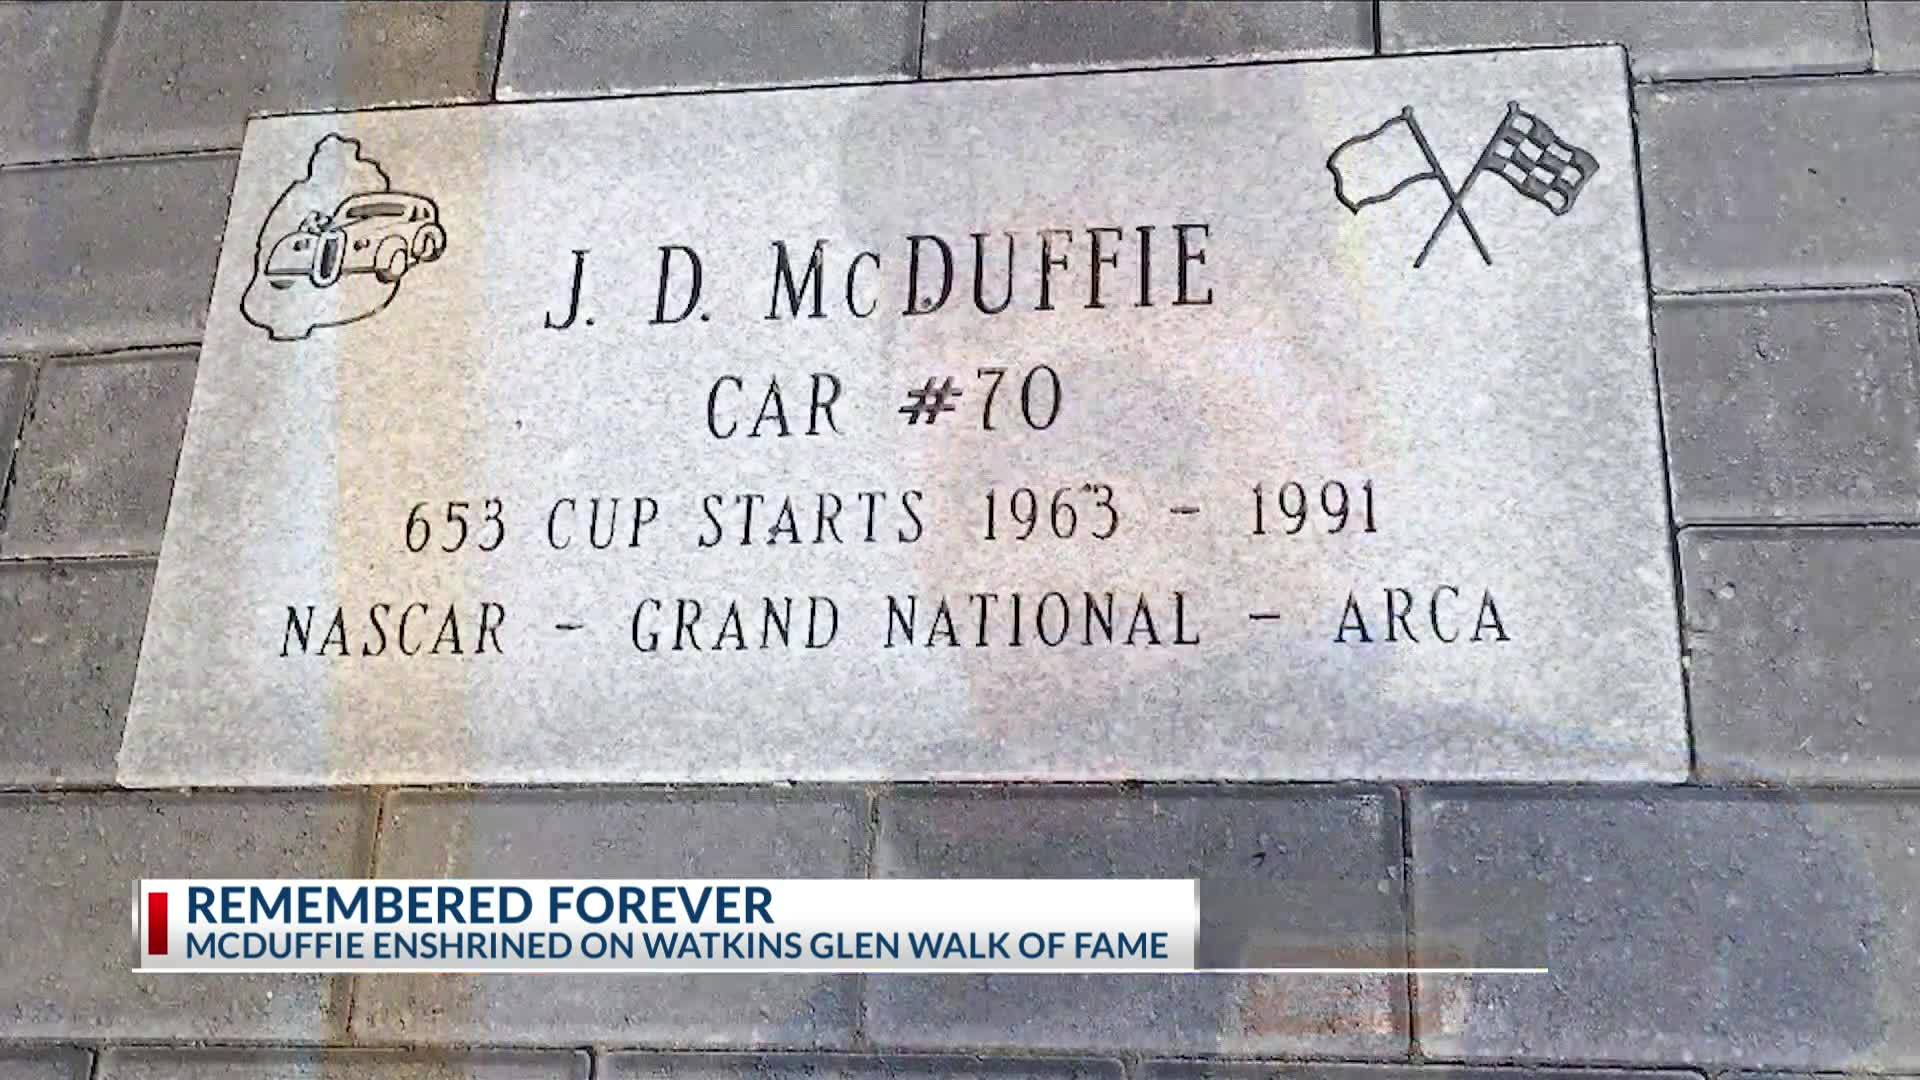 McDuffie_enshrined_on_Watkins_Glen_Walk__8_20190603224633